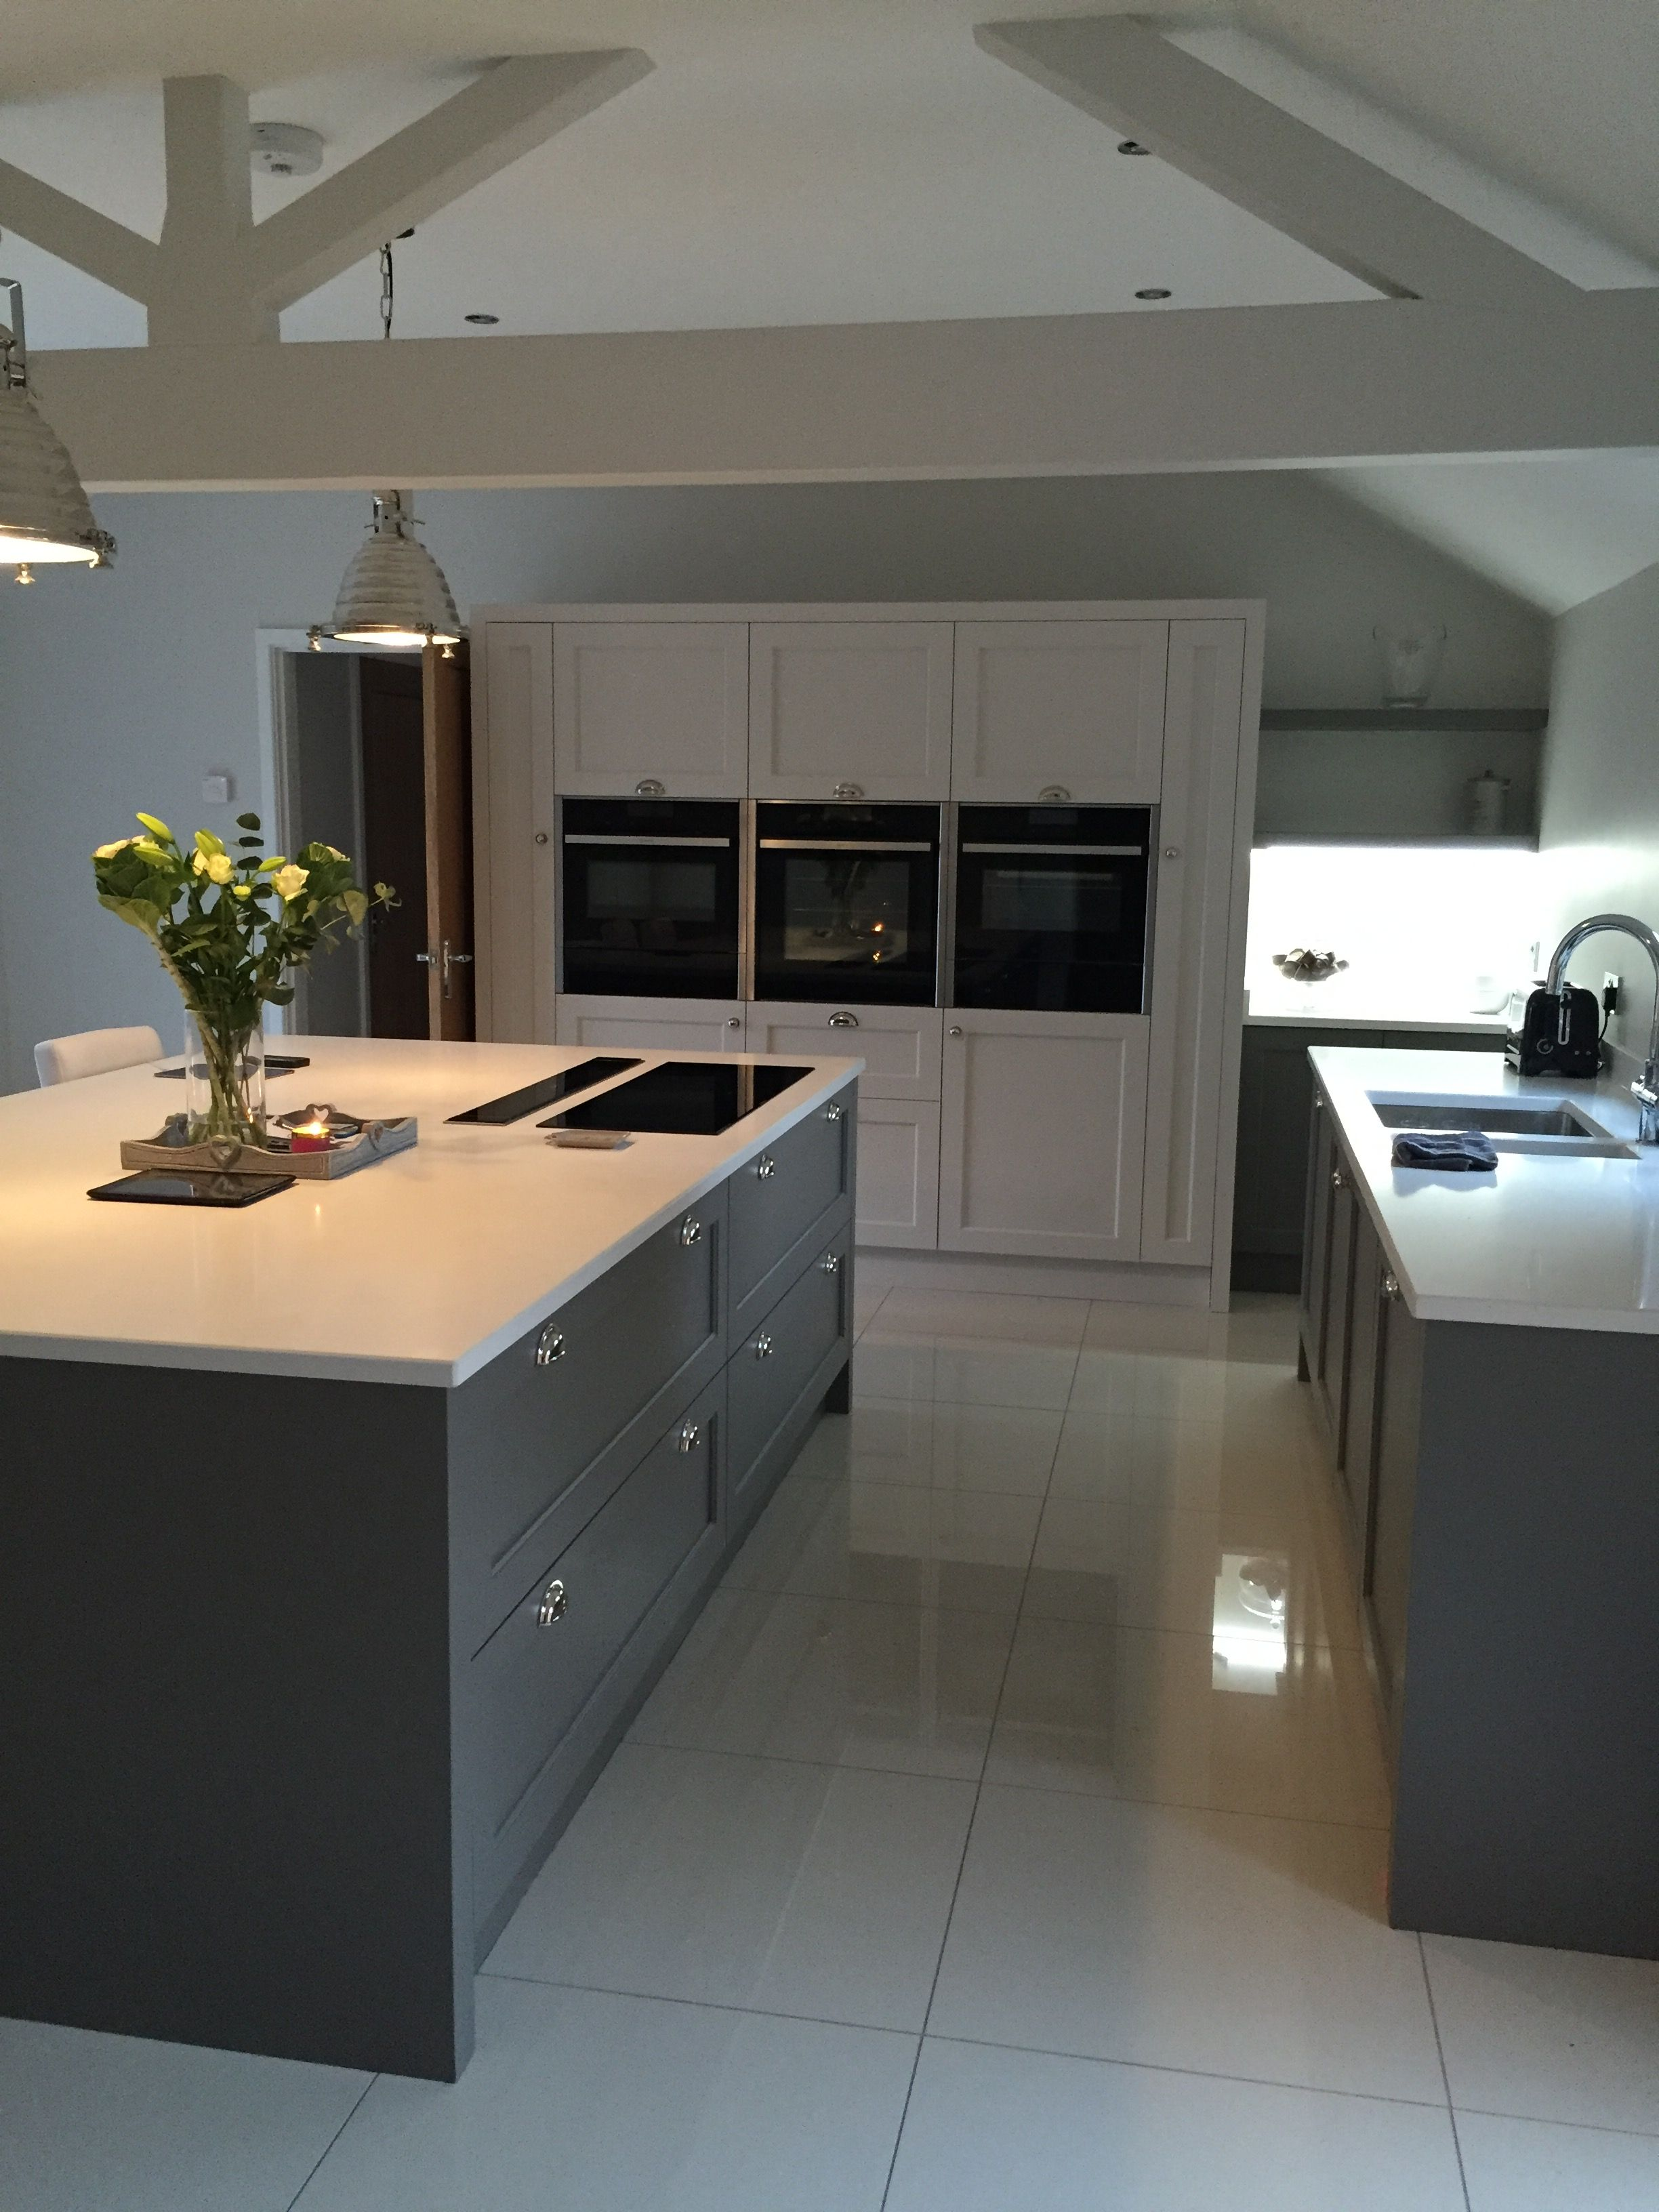 Best My Kitchen With Farrow Ball Moles Breath On The Island 400 x 300